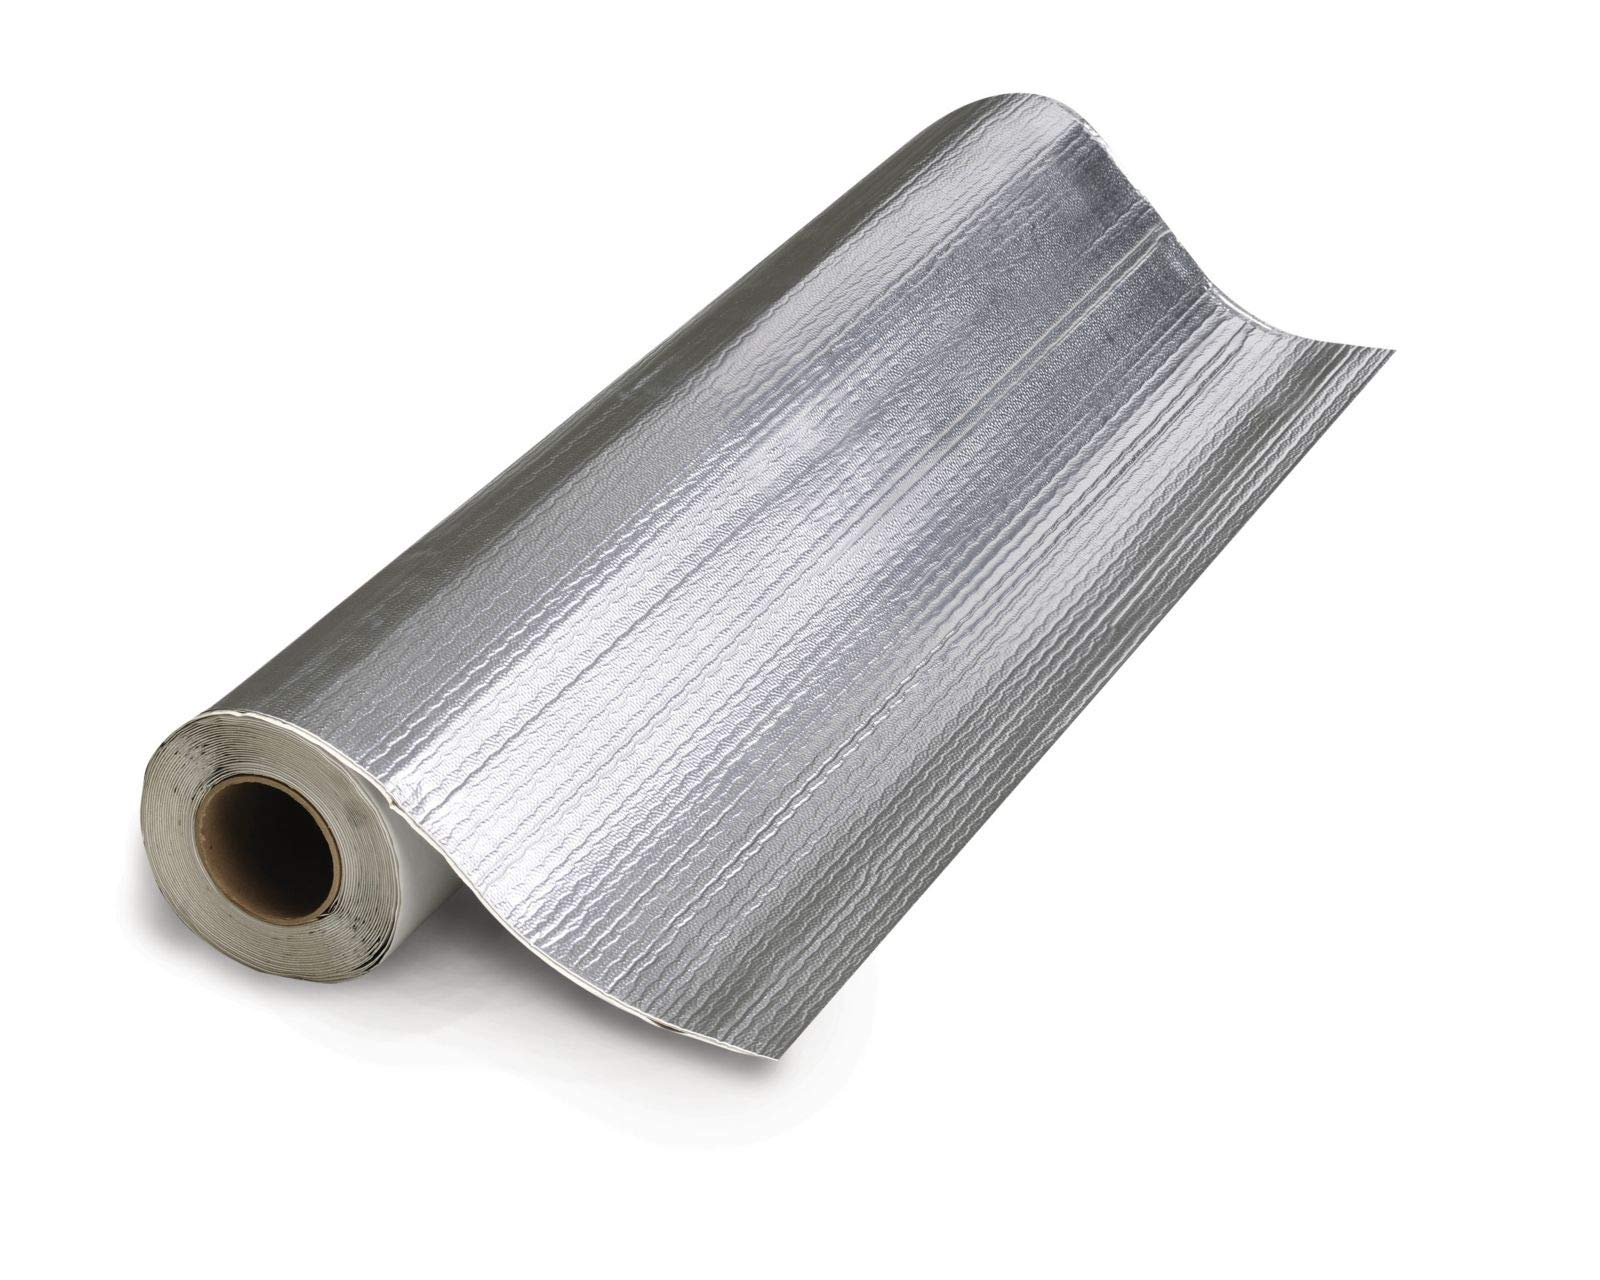 Flex Clad 400 Pipe and Duct Waterproofing Self-Stick Protective Sheet, Aluminum, 36'' x 33-1/2'' by BRB Products